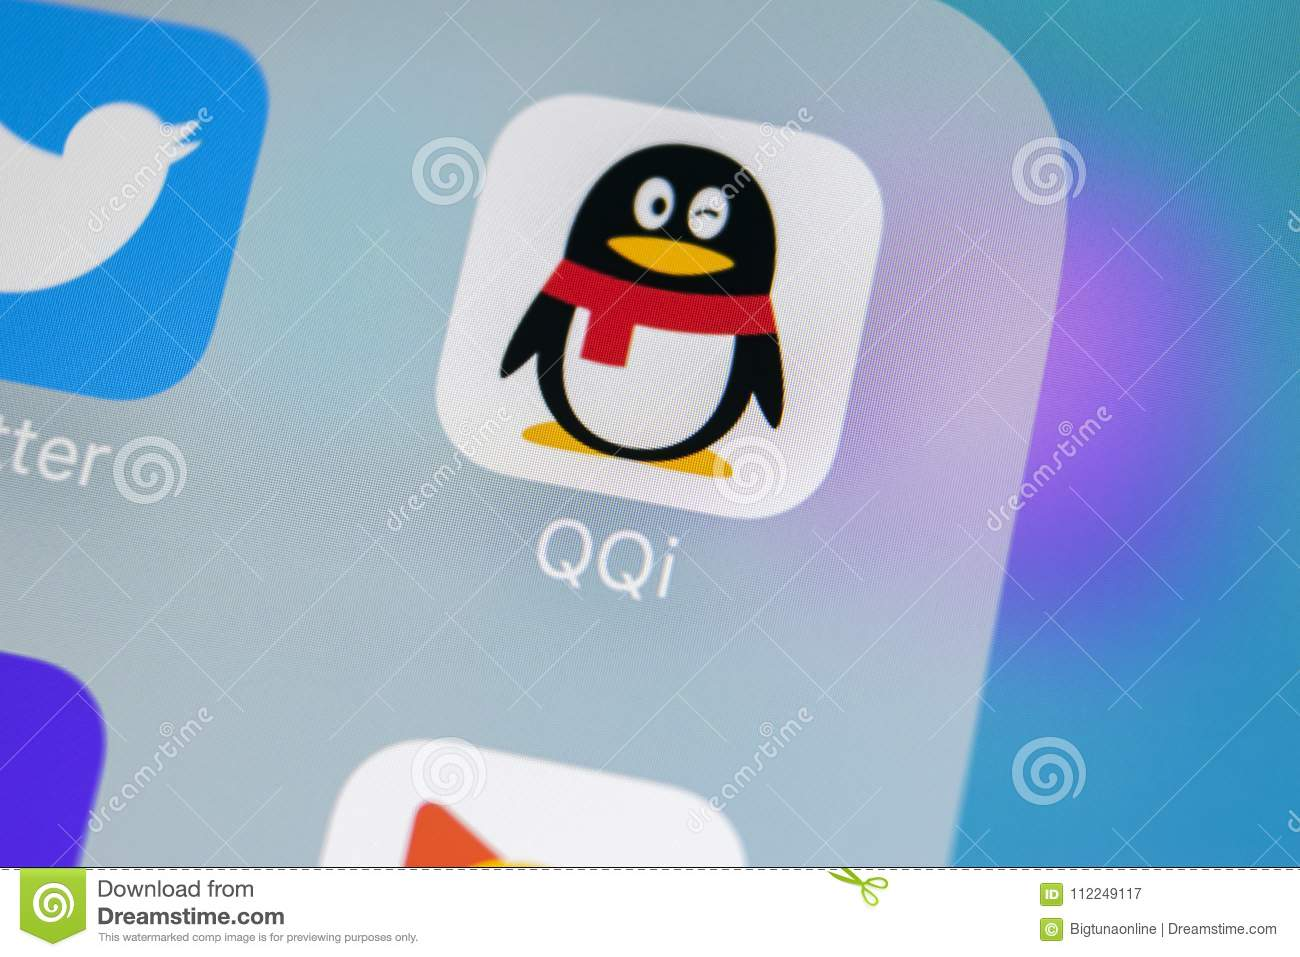 Qq messenger download.